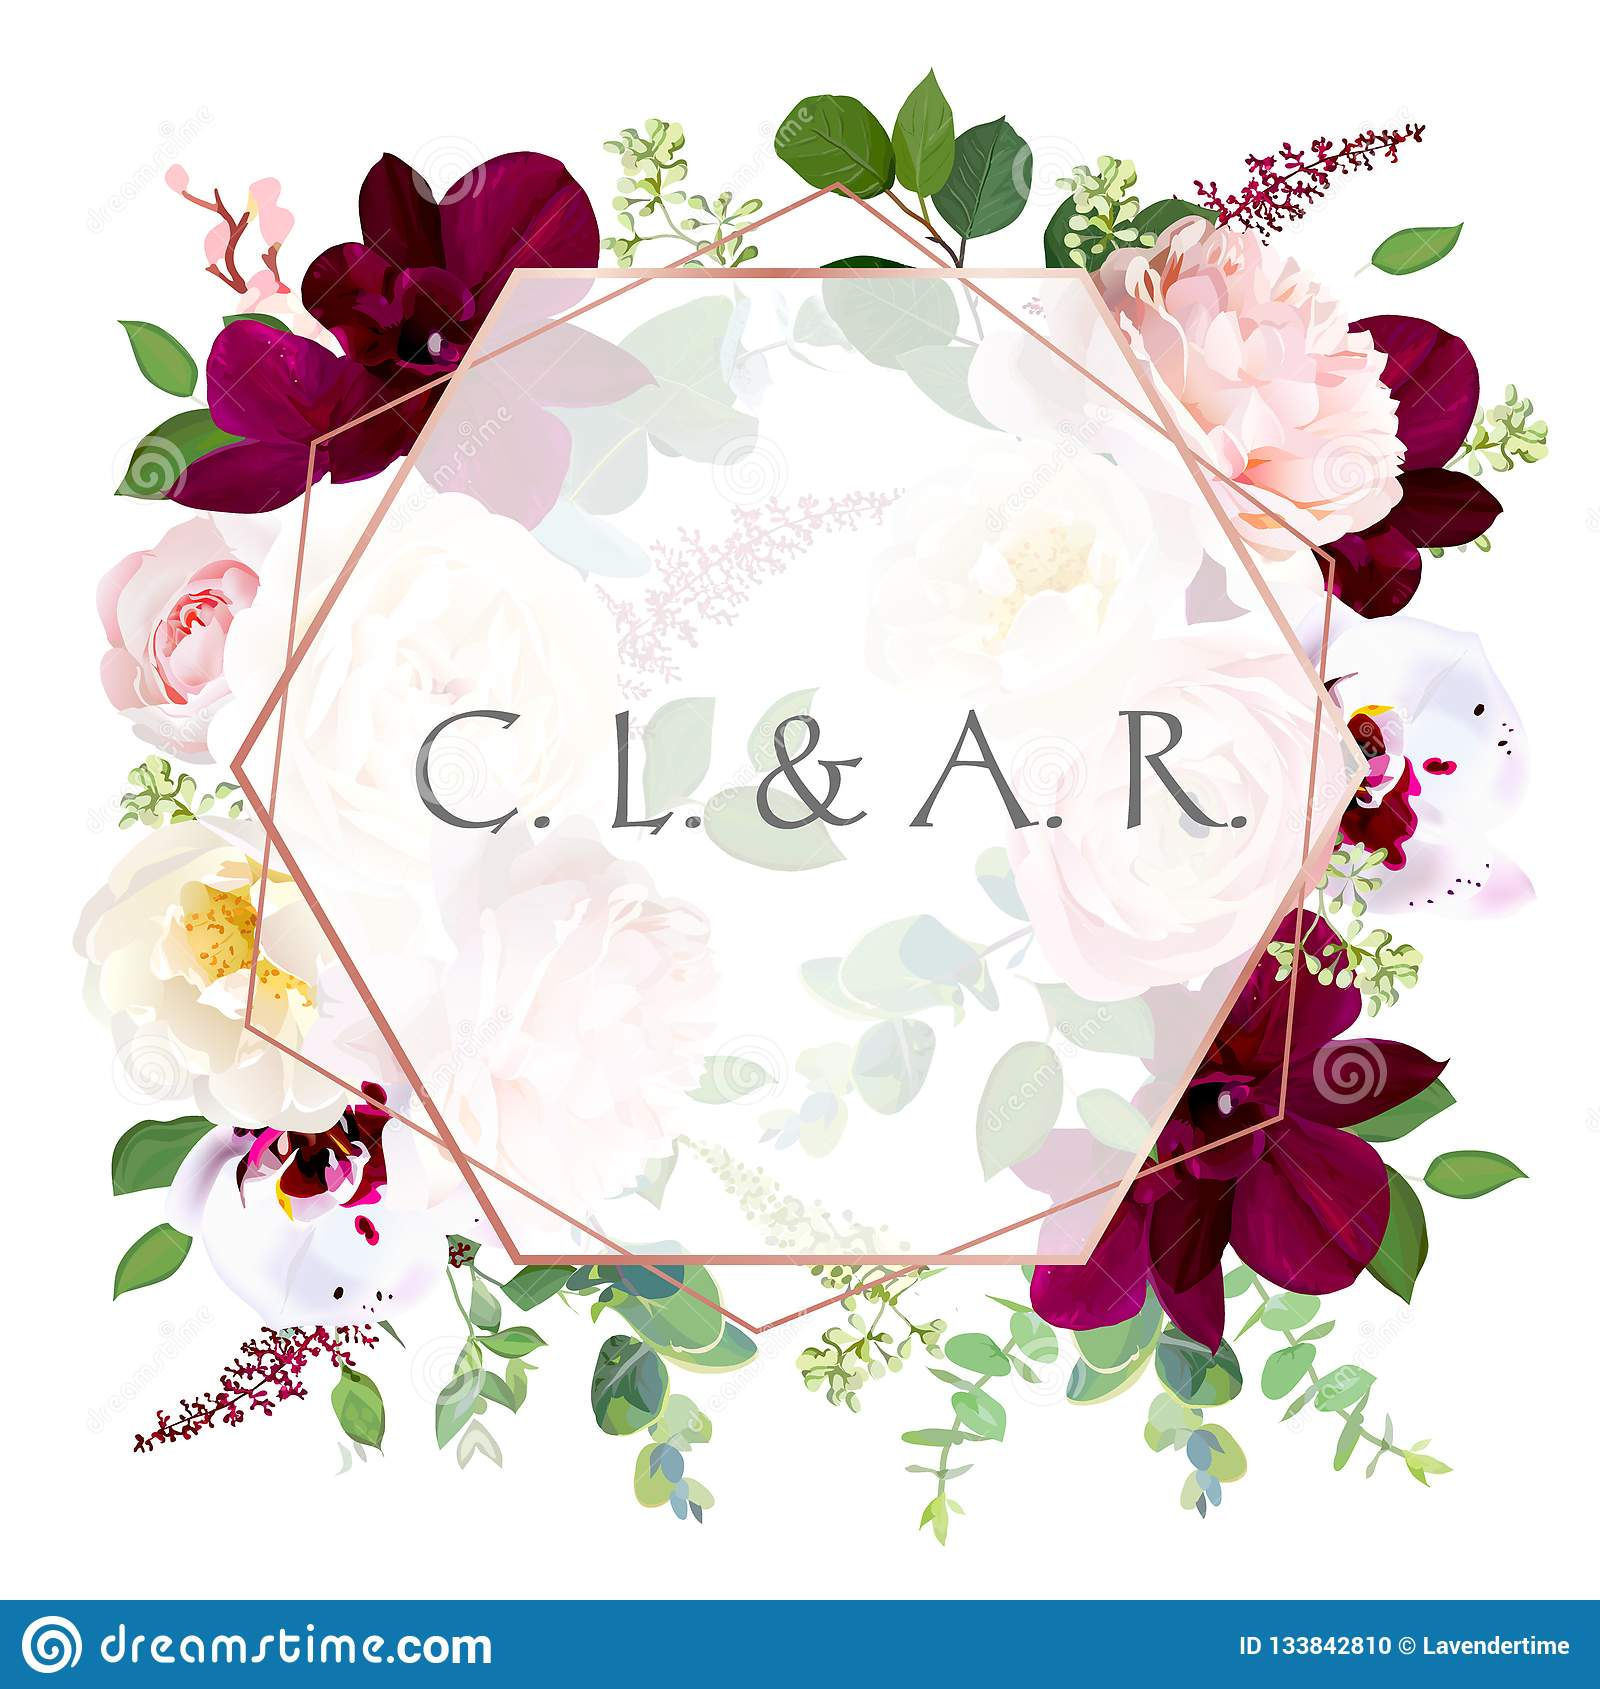 luxury fall flowers vector design card stock vector - illustration of  branch, greenery: 133842810  dreamstime.com